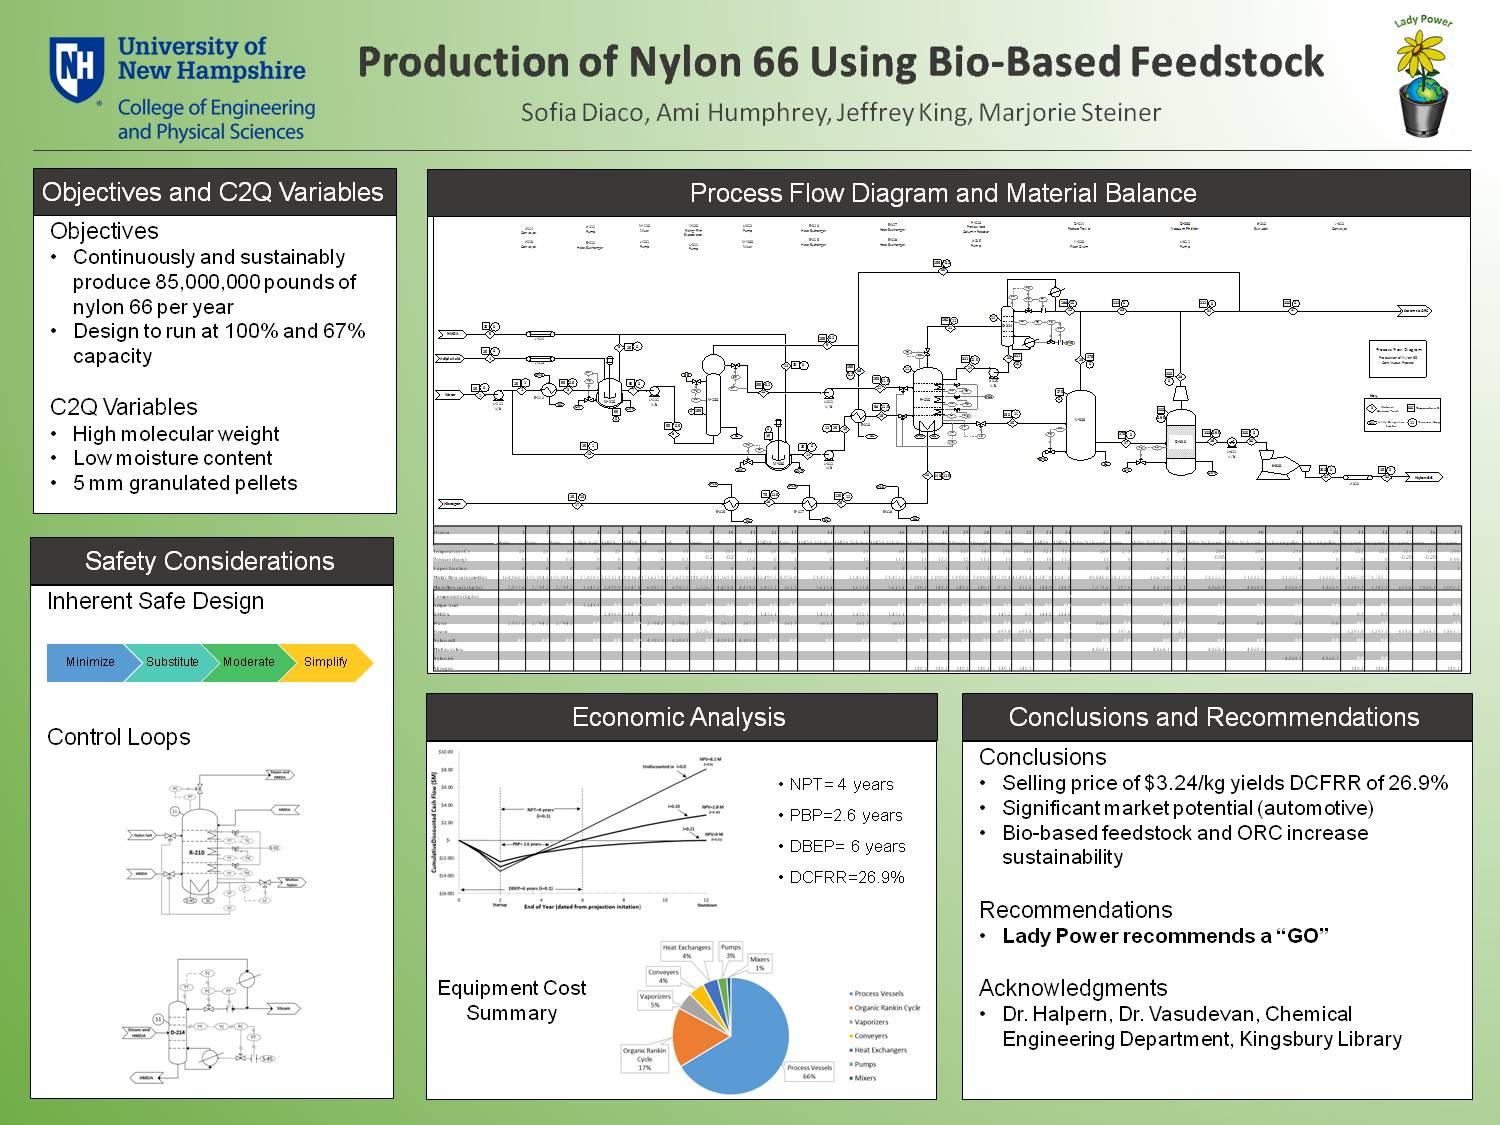 Production Of Nylon 66 Using Bio-Based Feedstock by sdiaco